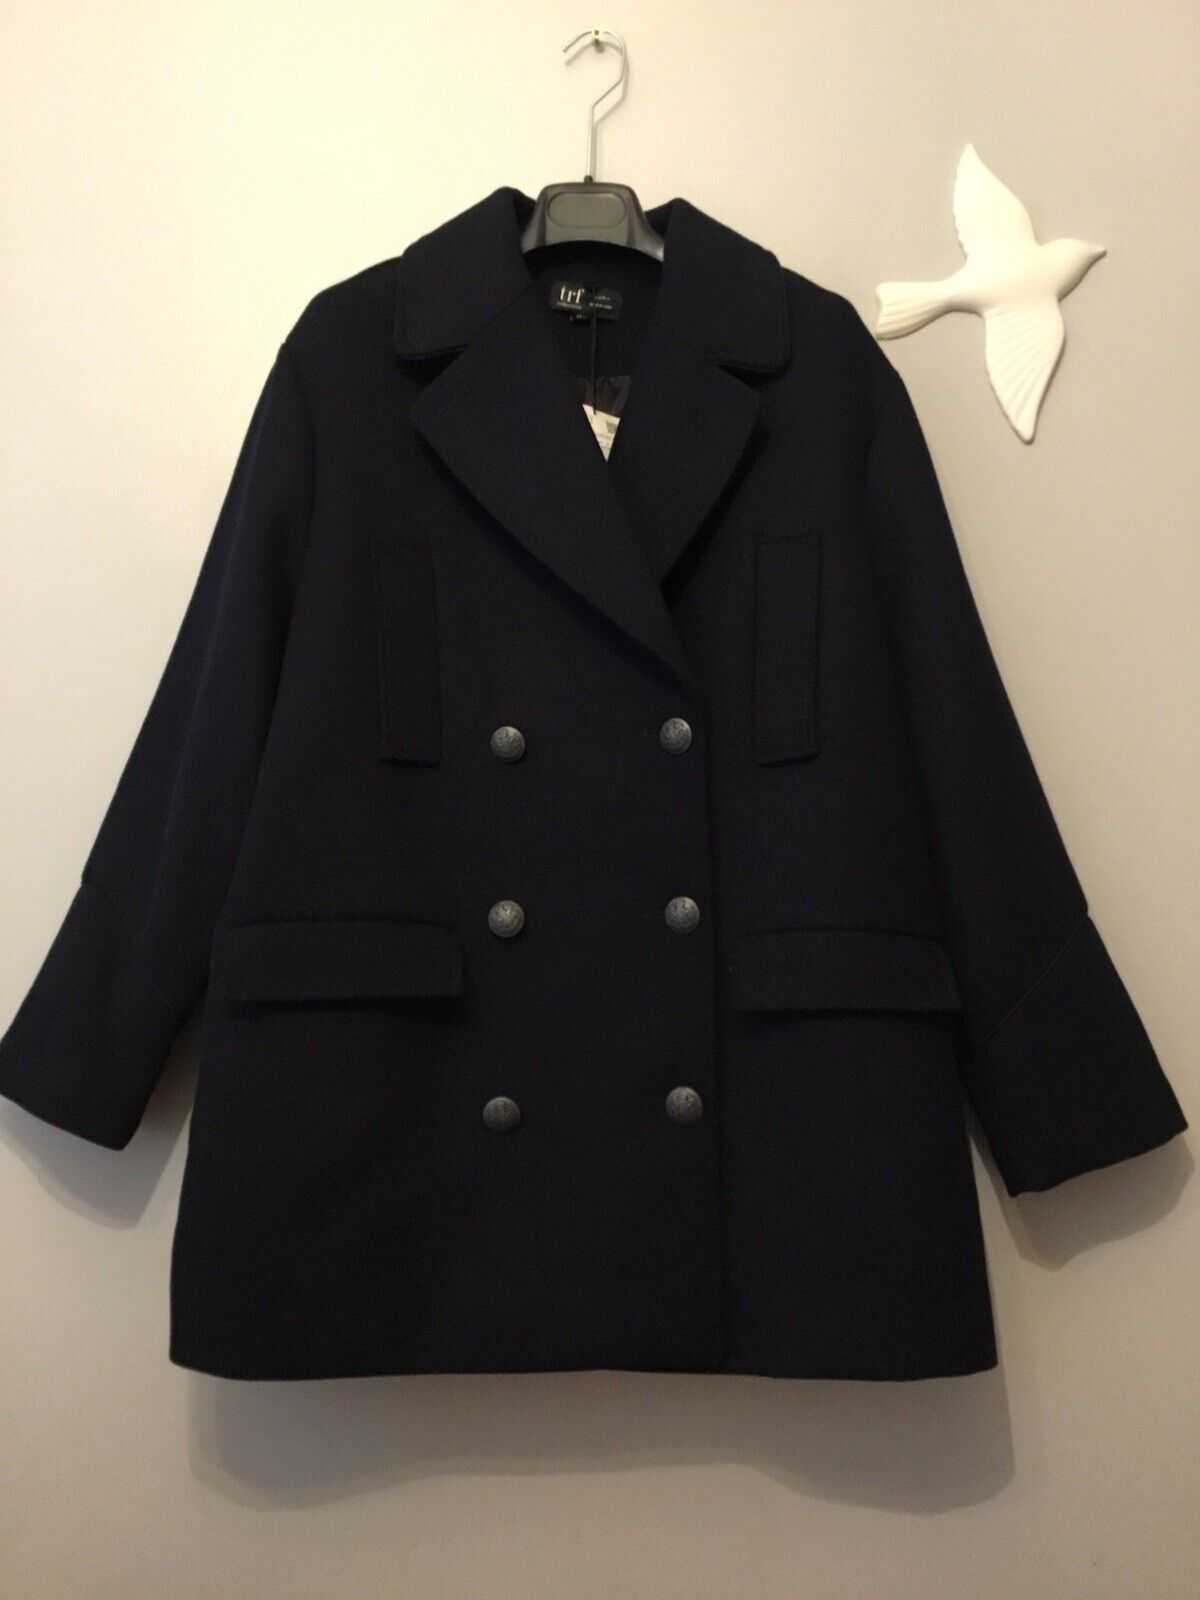 b4bbd58dcb606d ZARA Wool Double Coat Größe S-M Genuine Breasted Navy ntchlx1151 ...